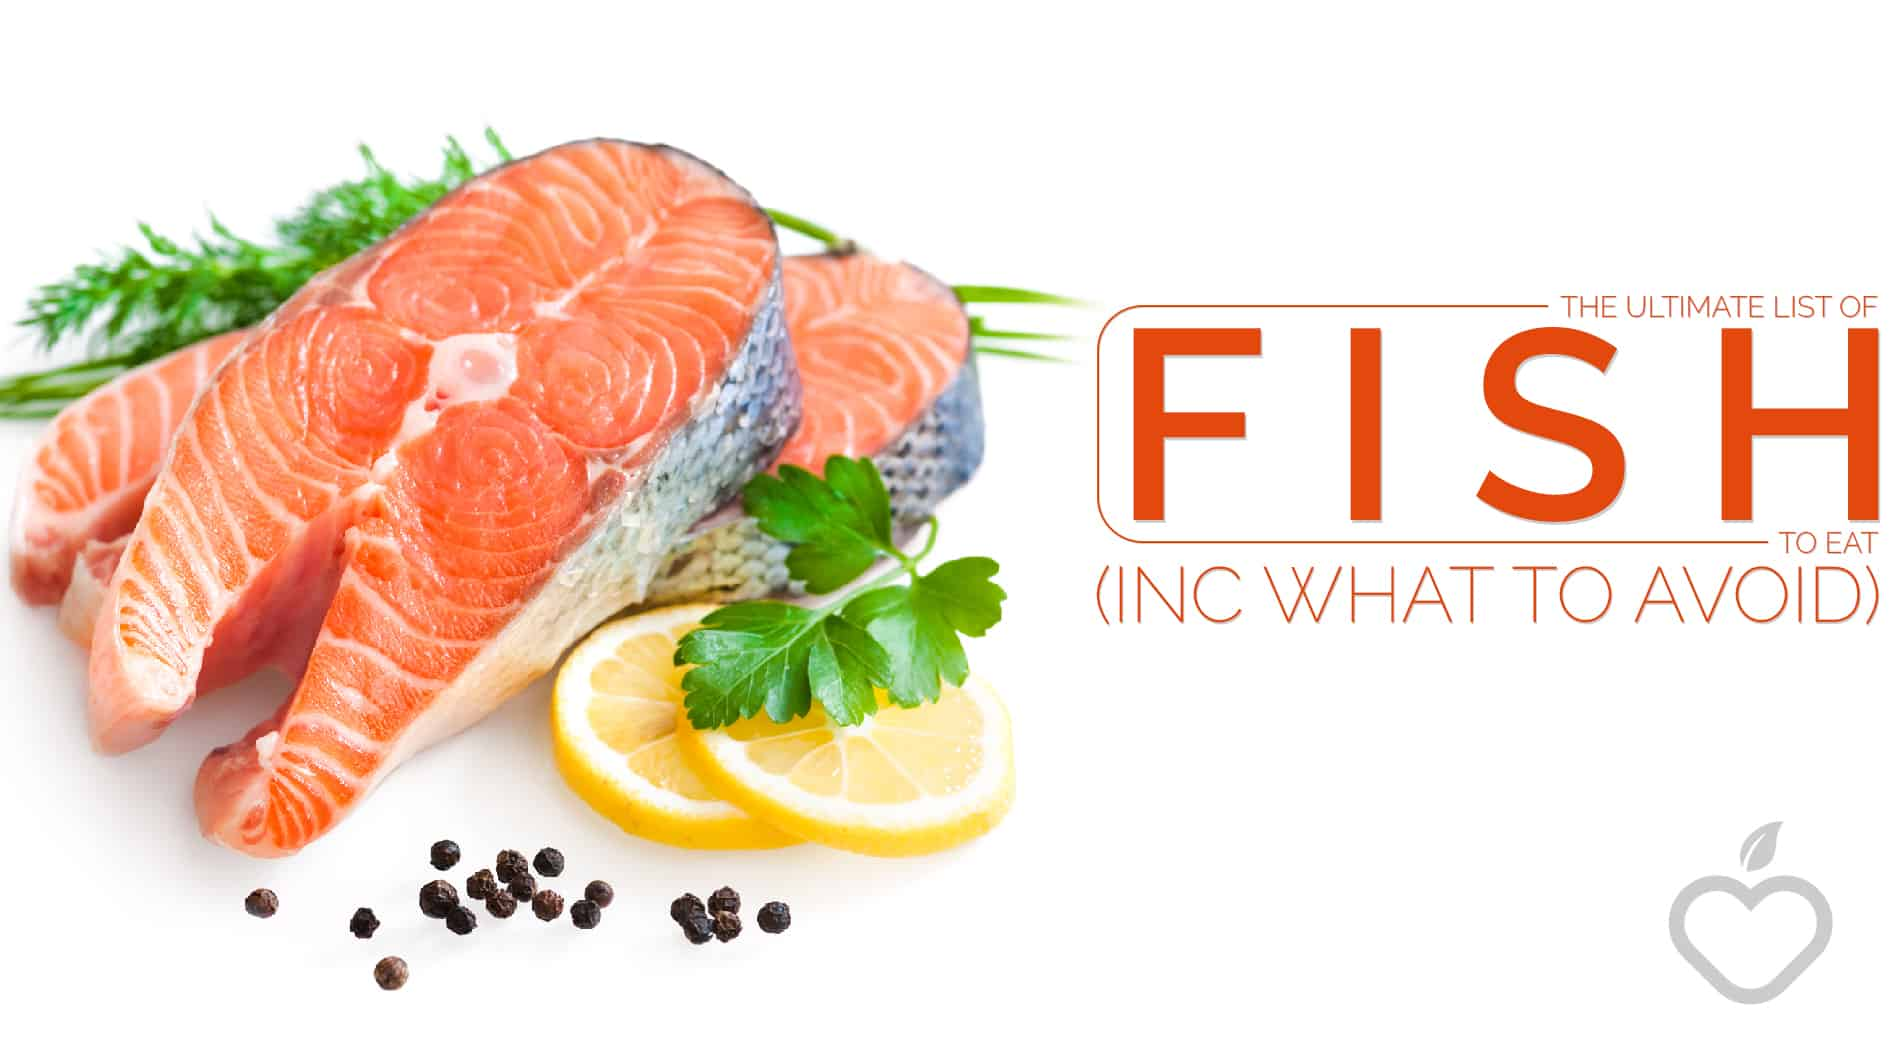 Fish To Eat Image Design 1 - The Ultimate List of Fish to Eat (Inc What to Avoid)